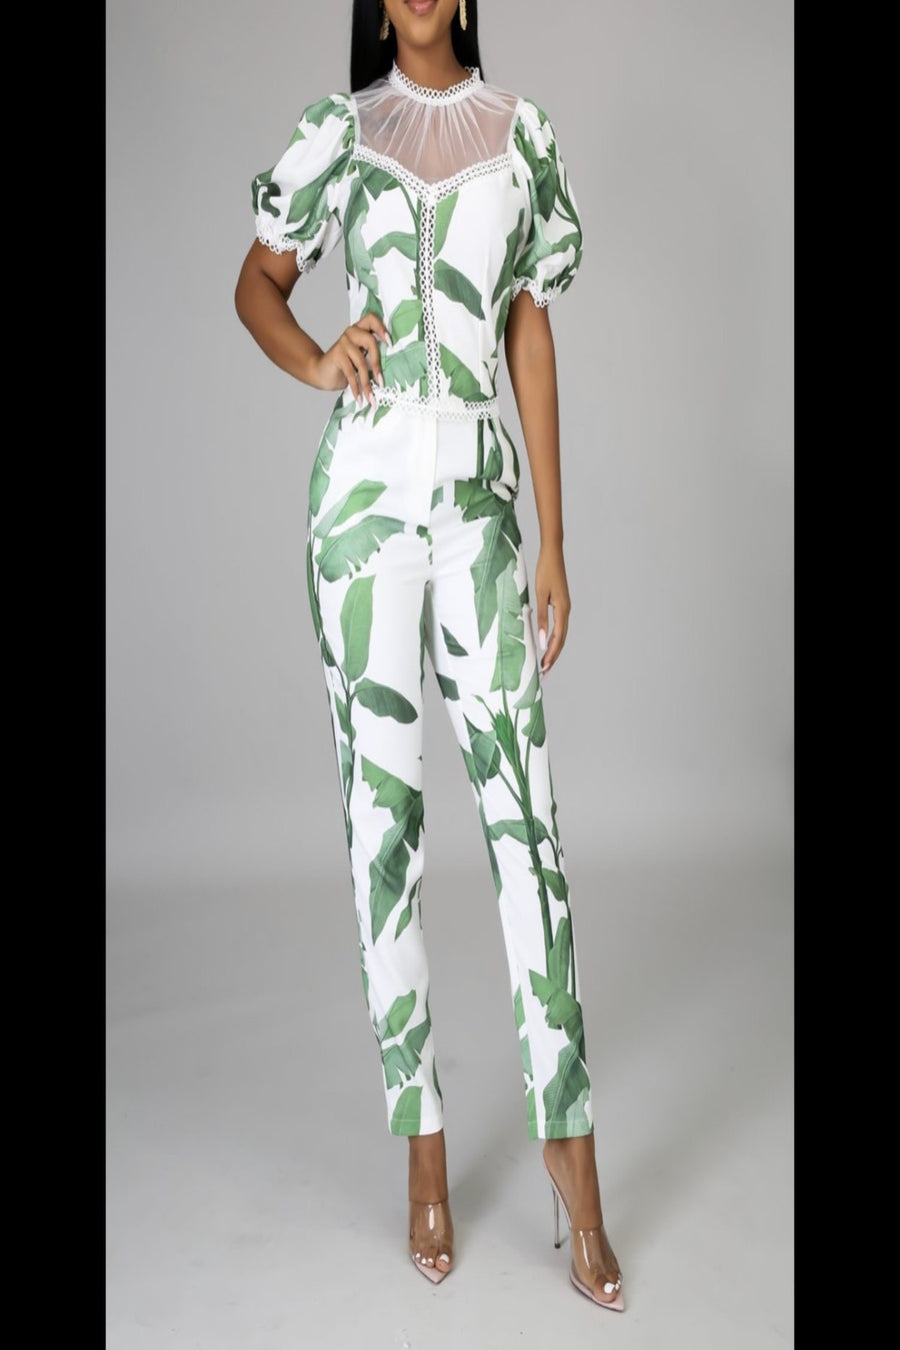 KLASSY Green & White pants set